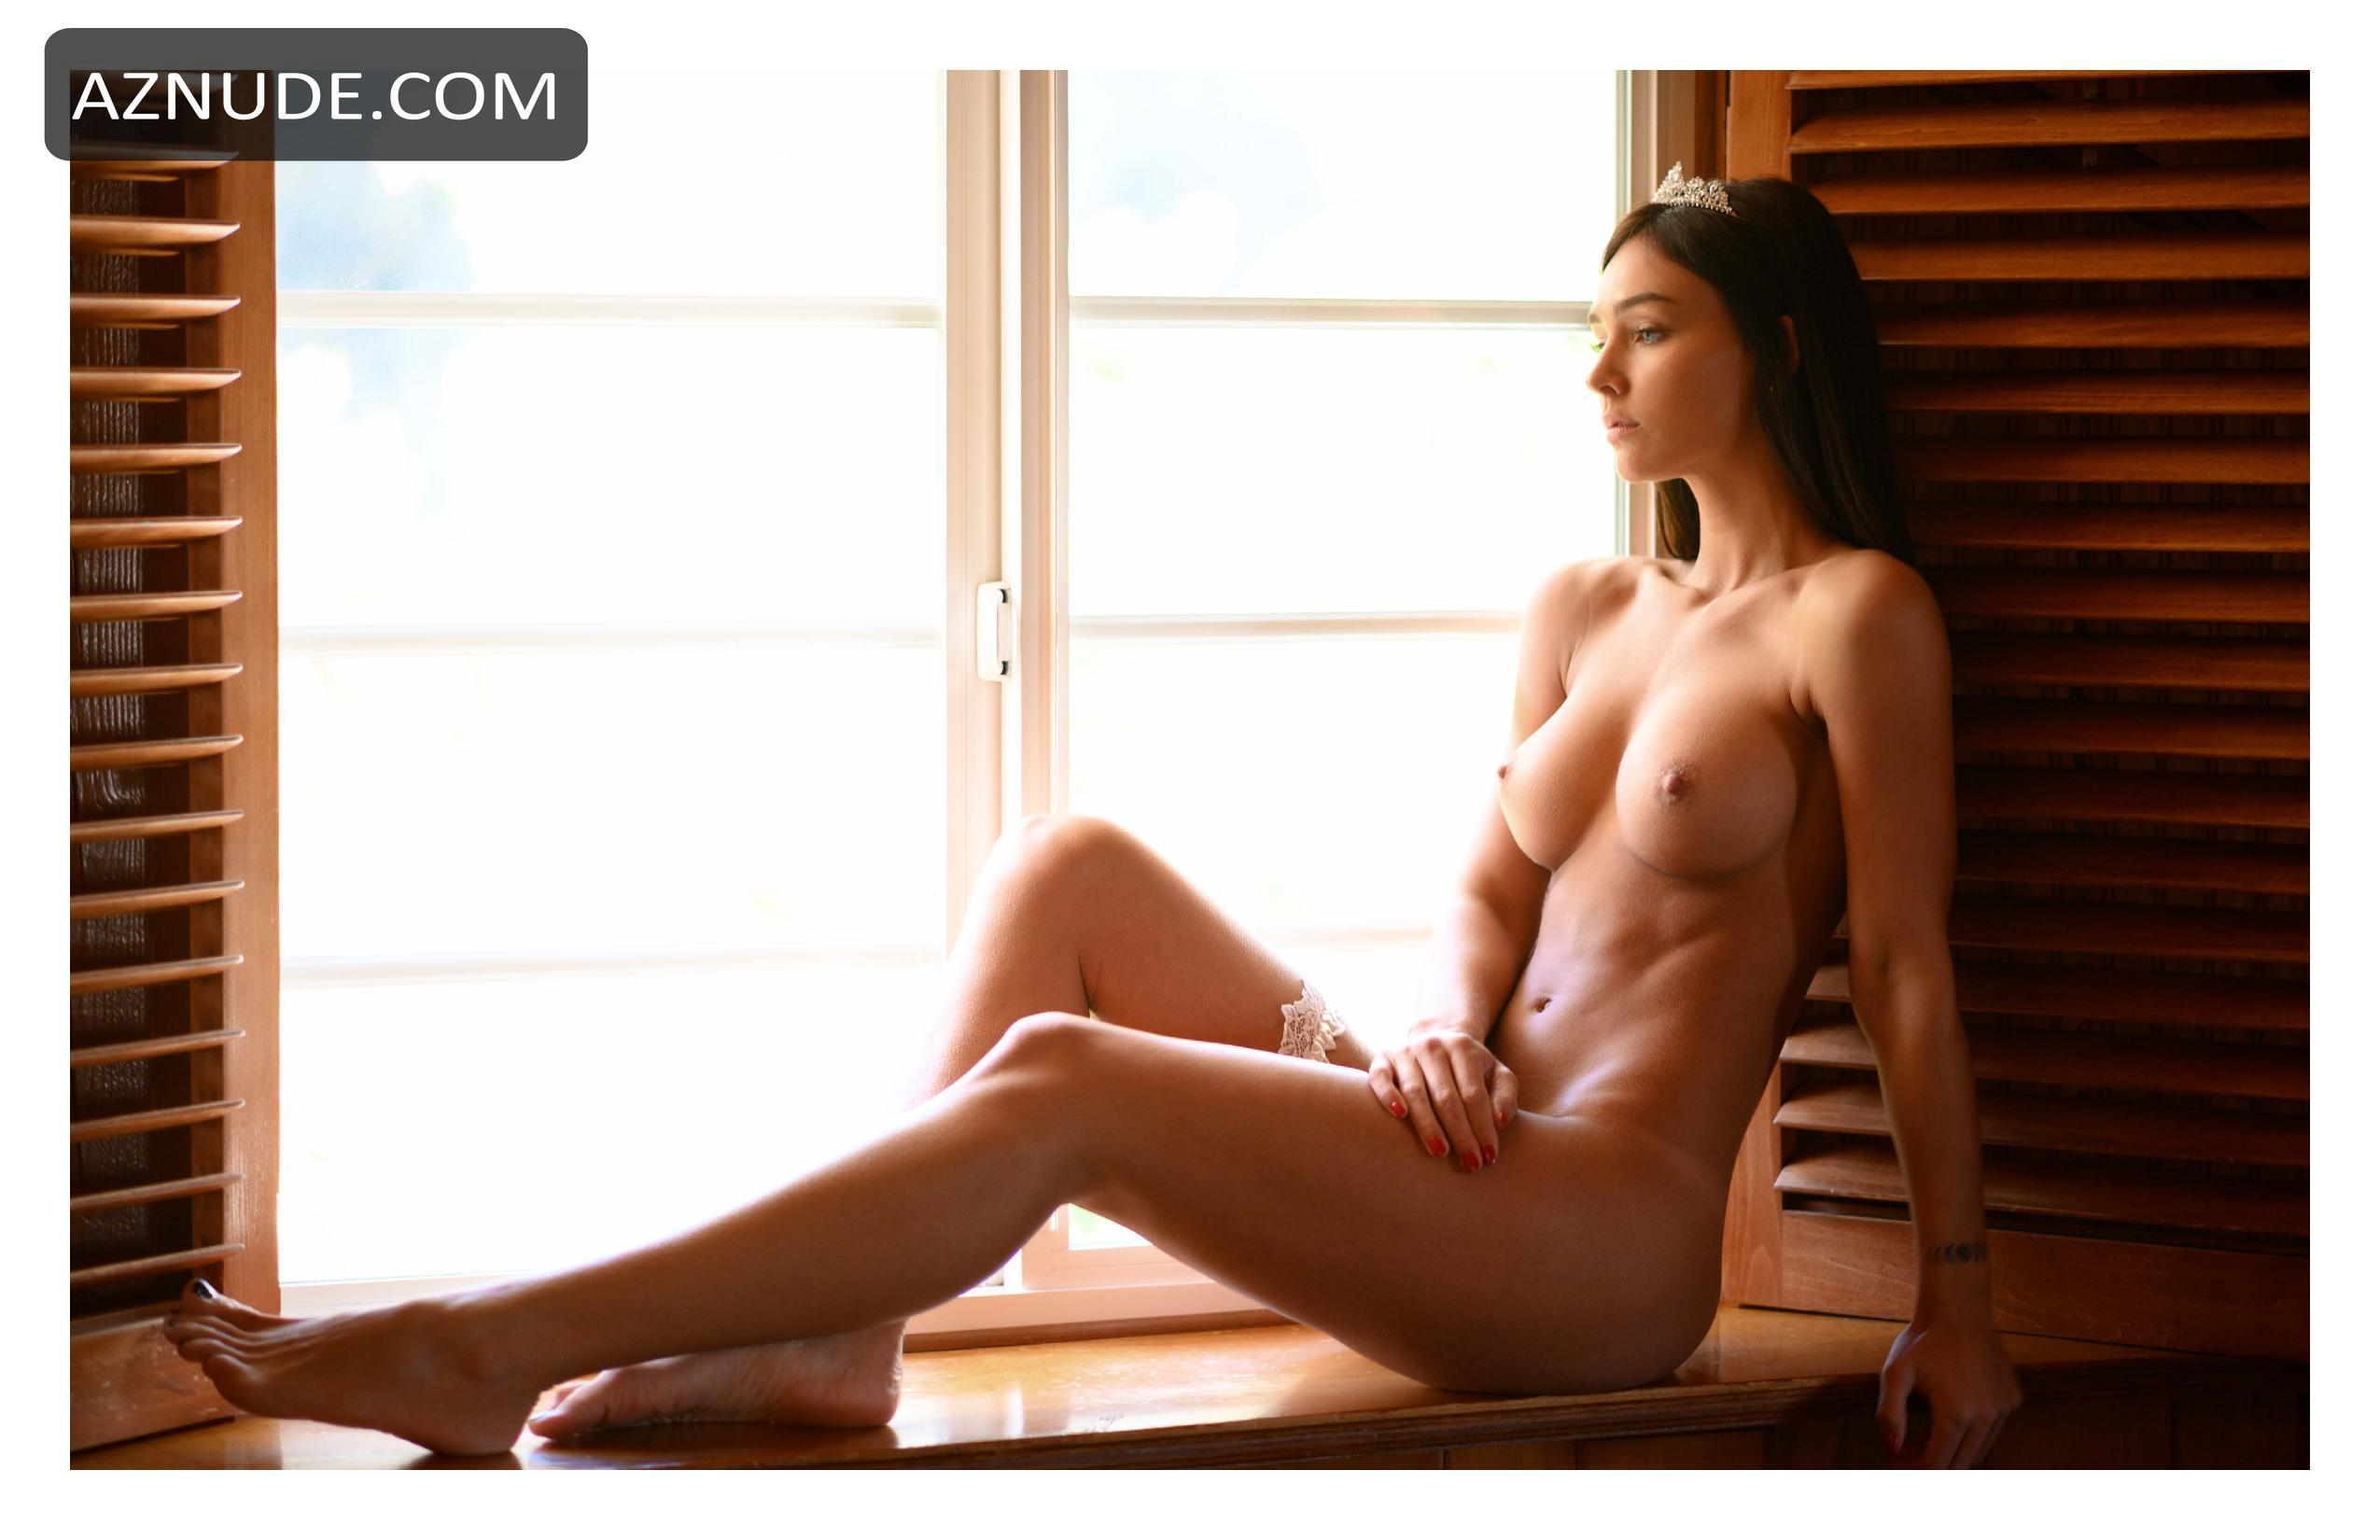 Topless Naked Photoshoot Pics Pictures